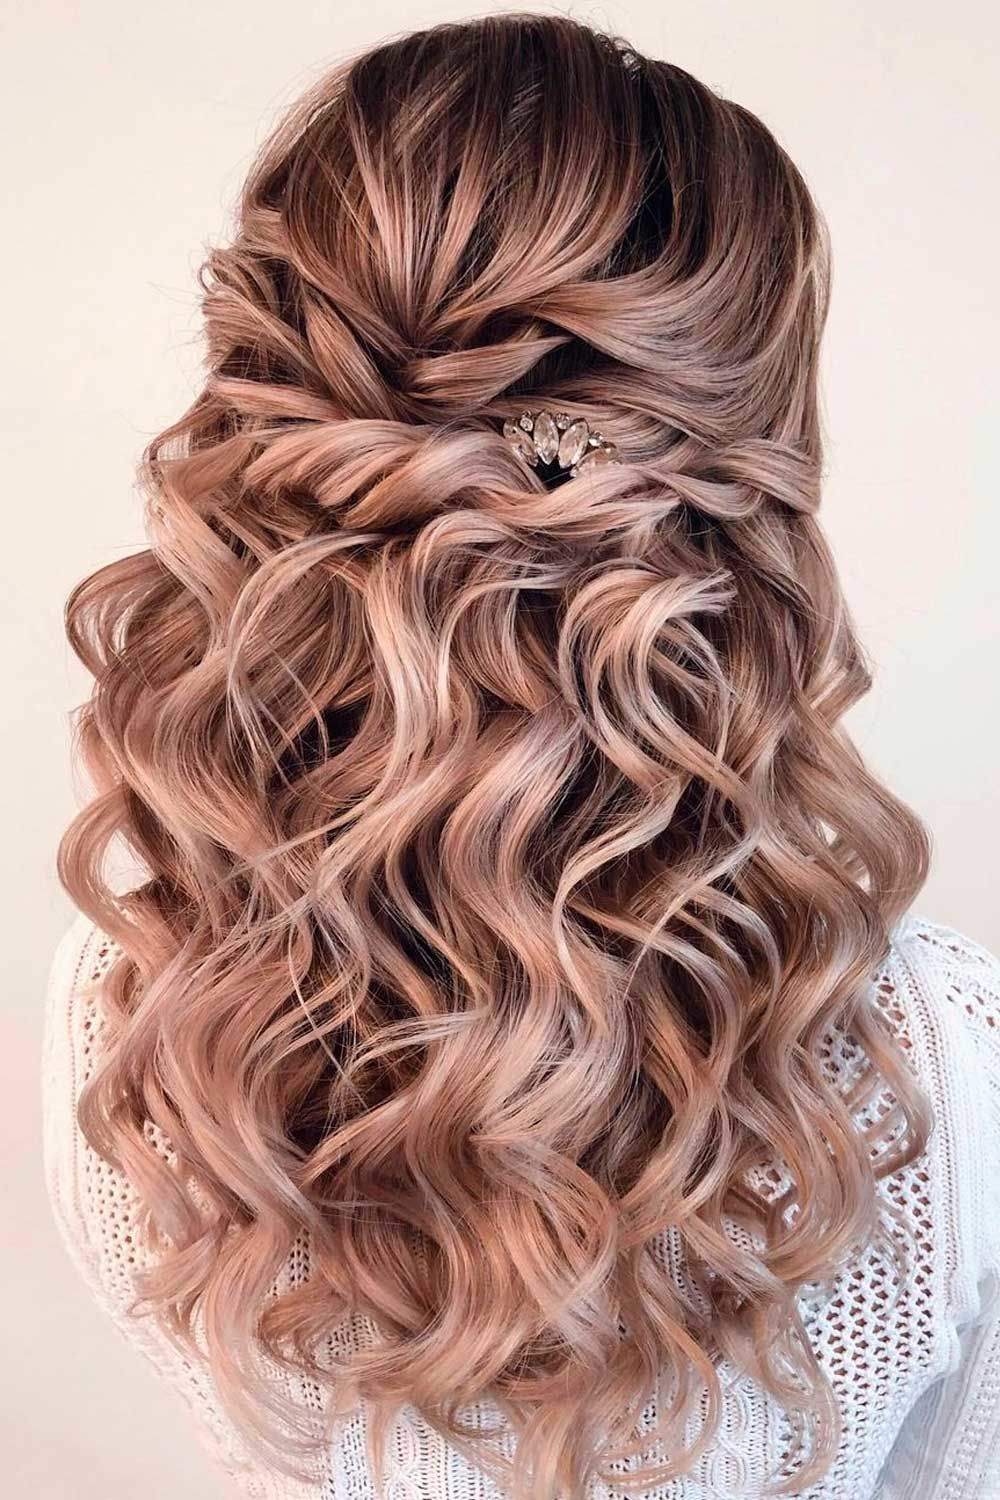 35 Best Ideas of Formal Hairstyles for Long Hair 2020 | LoveHairStyles